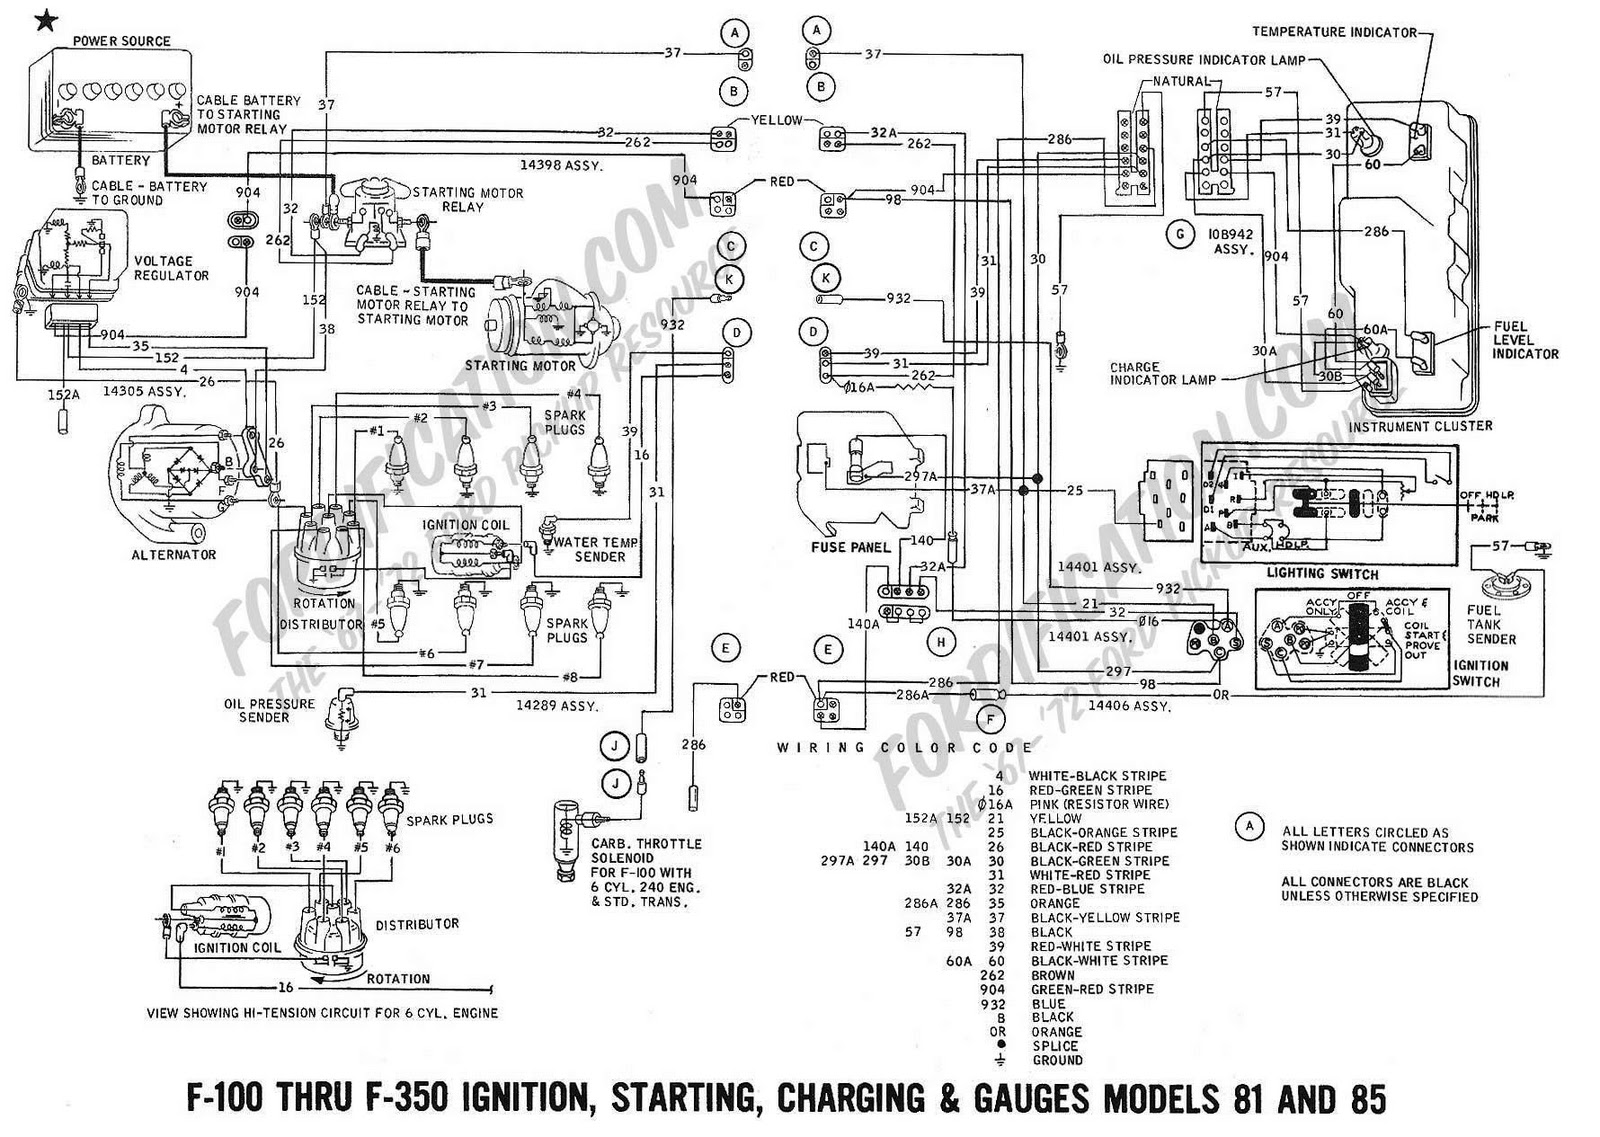 1997 Ford F150 Horn Wiring Diagram Diagrams 97 F 150 Fuse Box Galaxie Cluster Auto Electrical Rh Semanticscholar Org Uk Edu Bitoku Me